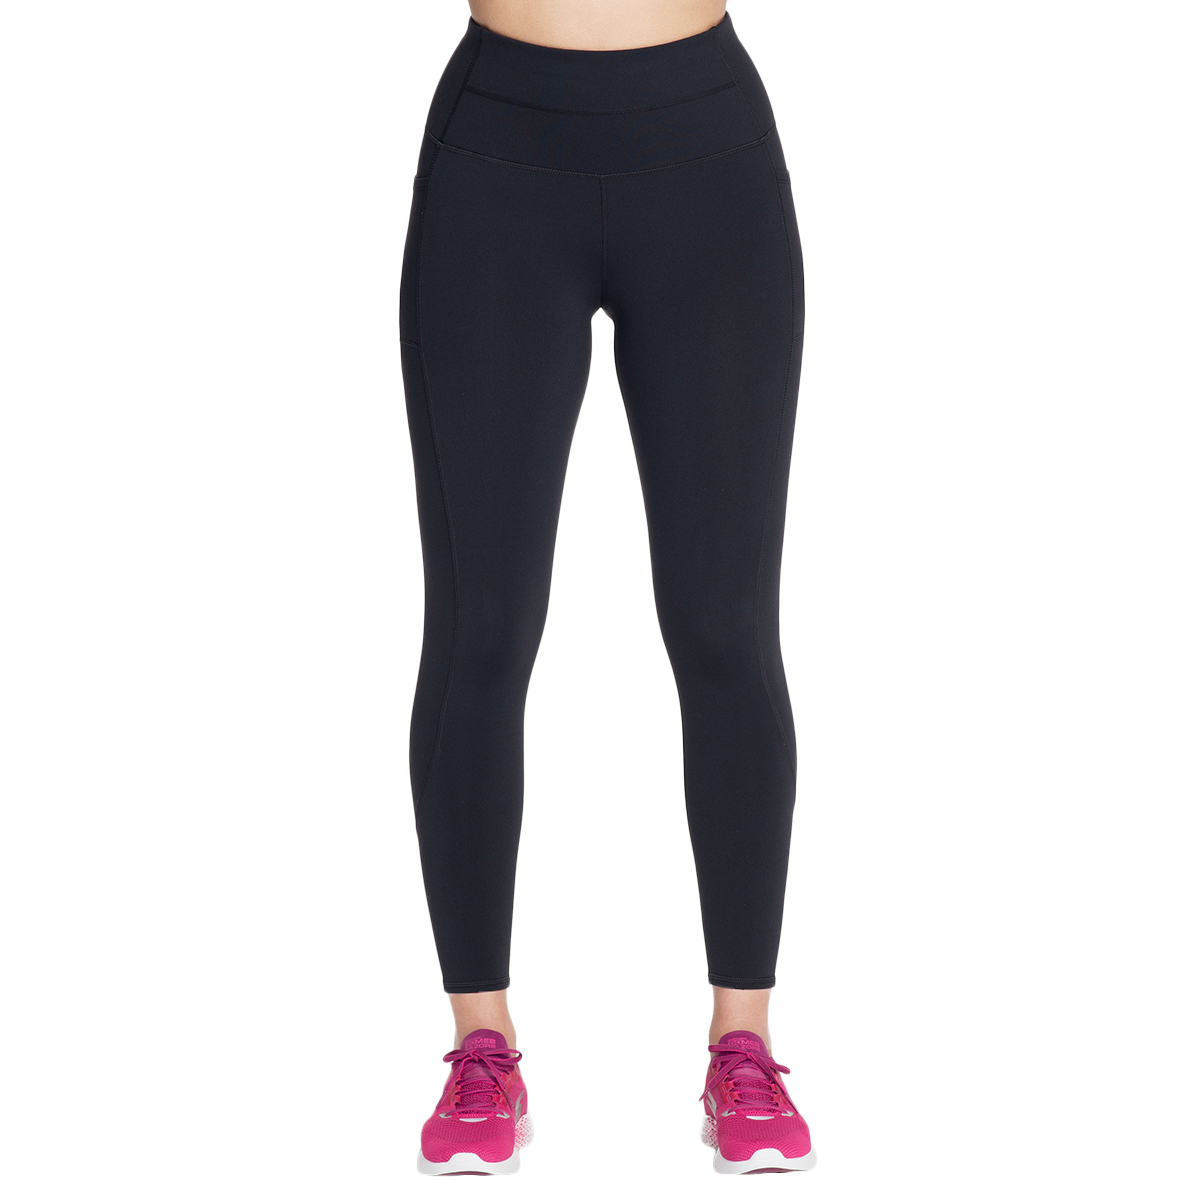 Skechers Women's Backbend High-Waisted Leggings - Black, L